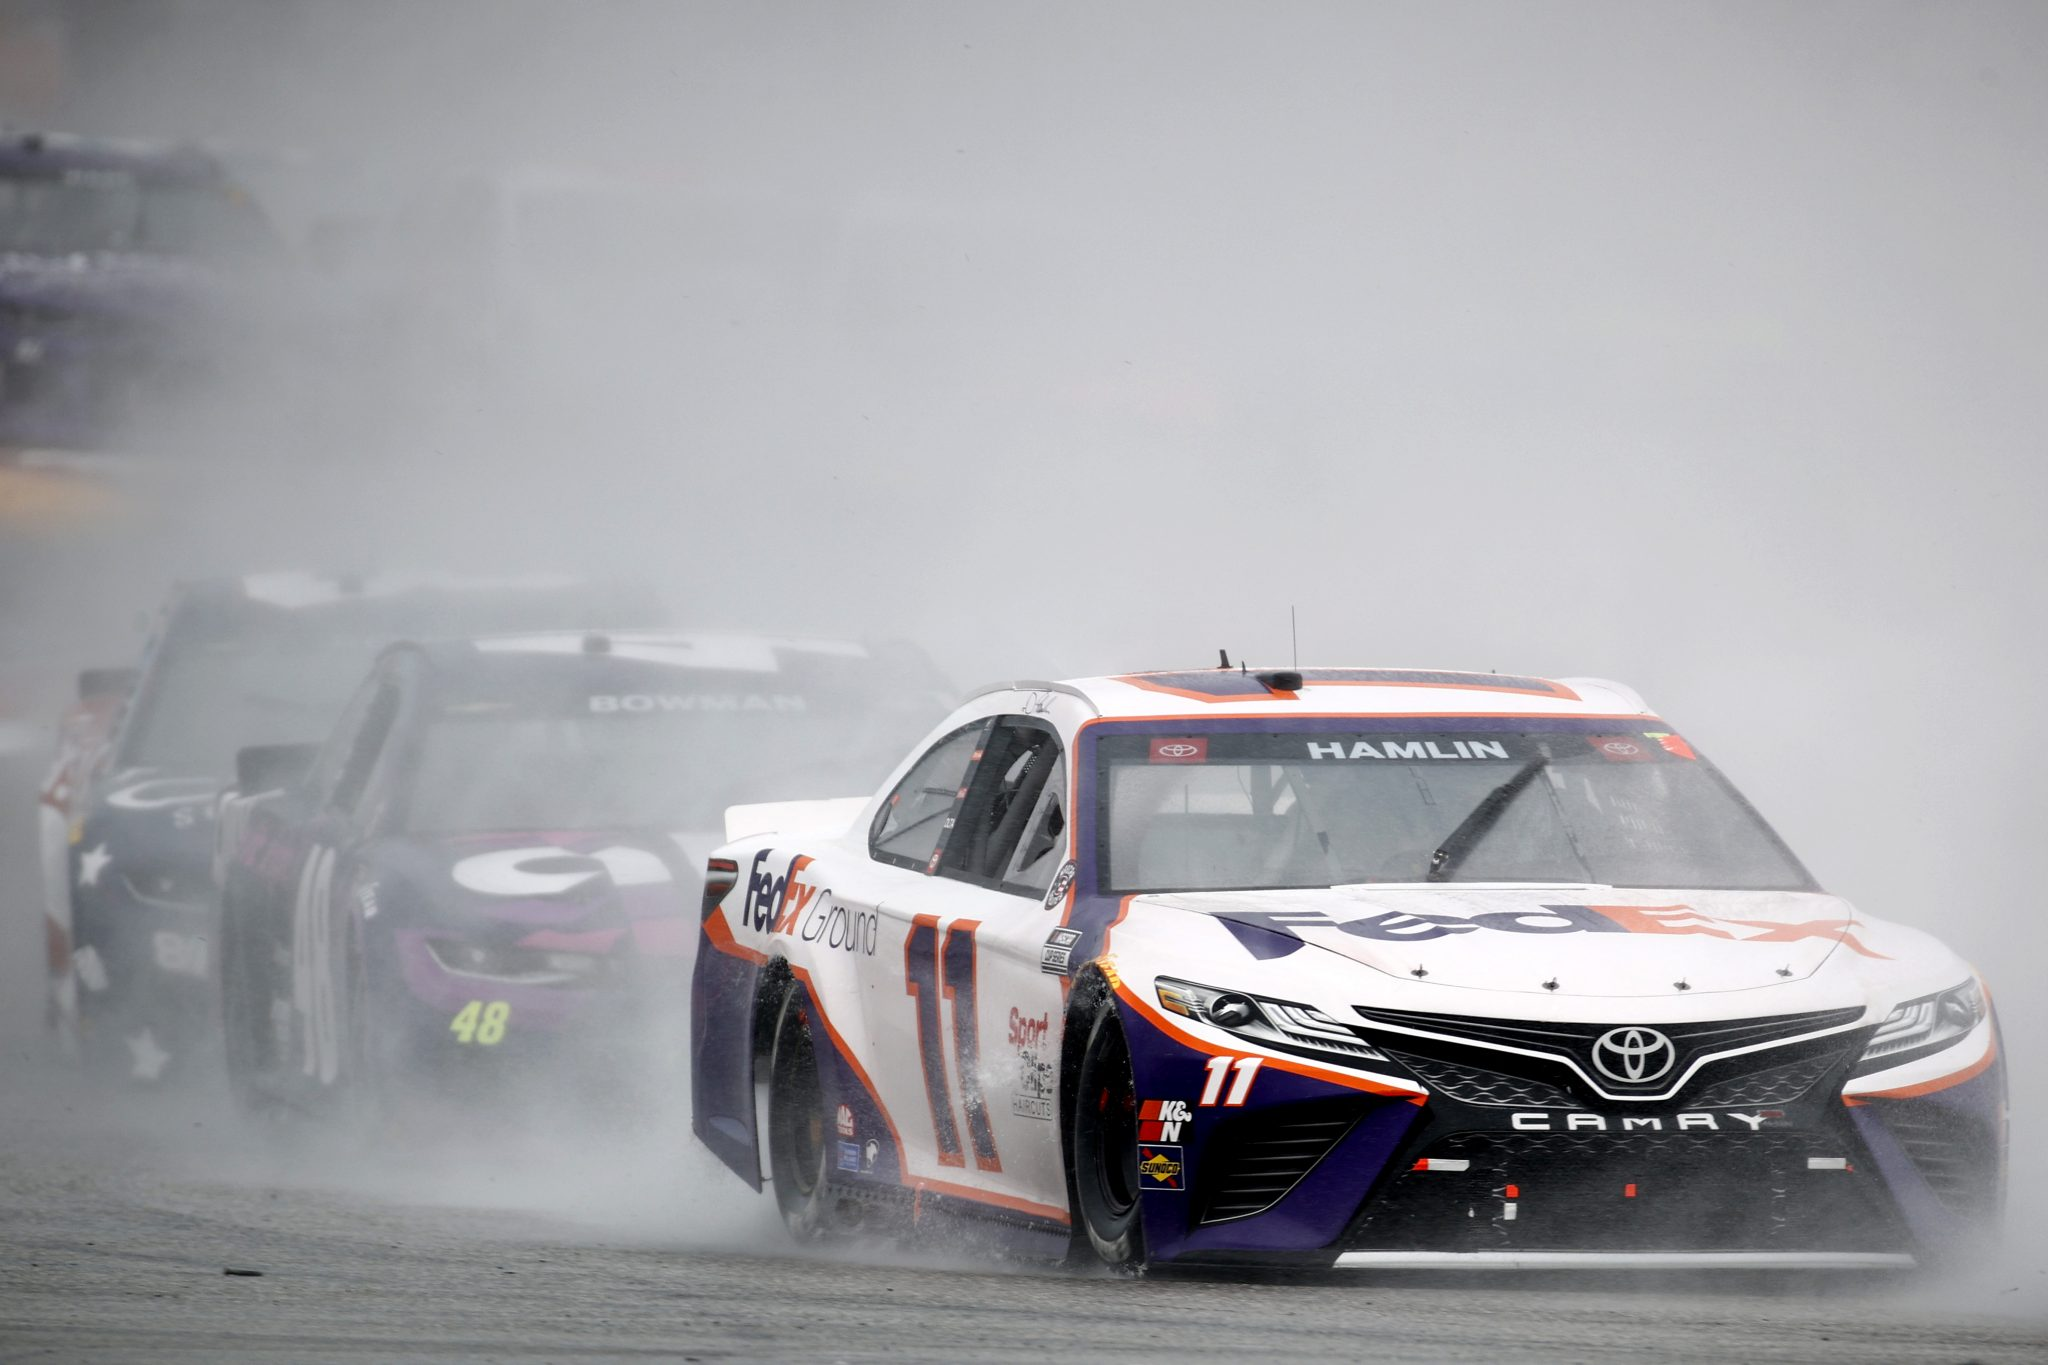 AUSTIN, TEXAS - MAY 23: Denny Hamlin, driver of the #11 FedEx Ground Toyota, drives during the NASCAR Cup Series EchoPark Texas Grand Prix at Circuit of The Americas on May 23, 2021 in Austin, Texas. (Photo by Jared C. Tilton/Getty Images)   Getty Images